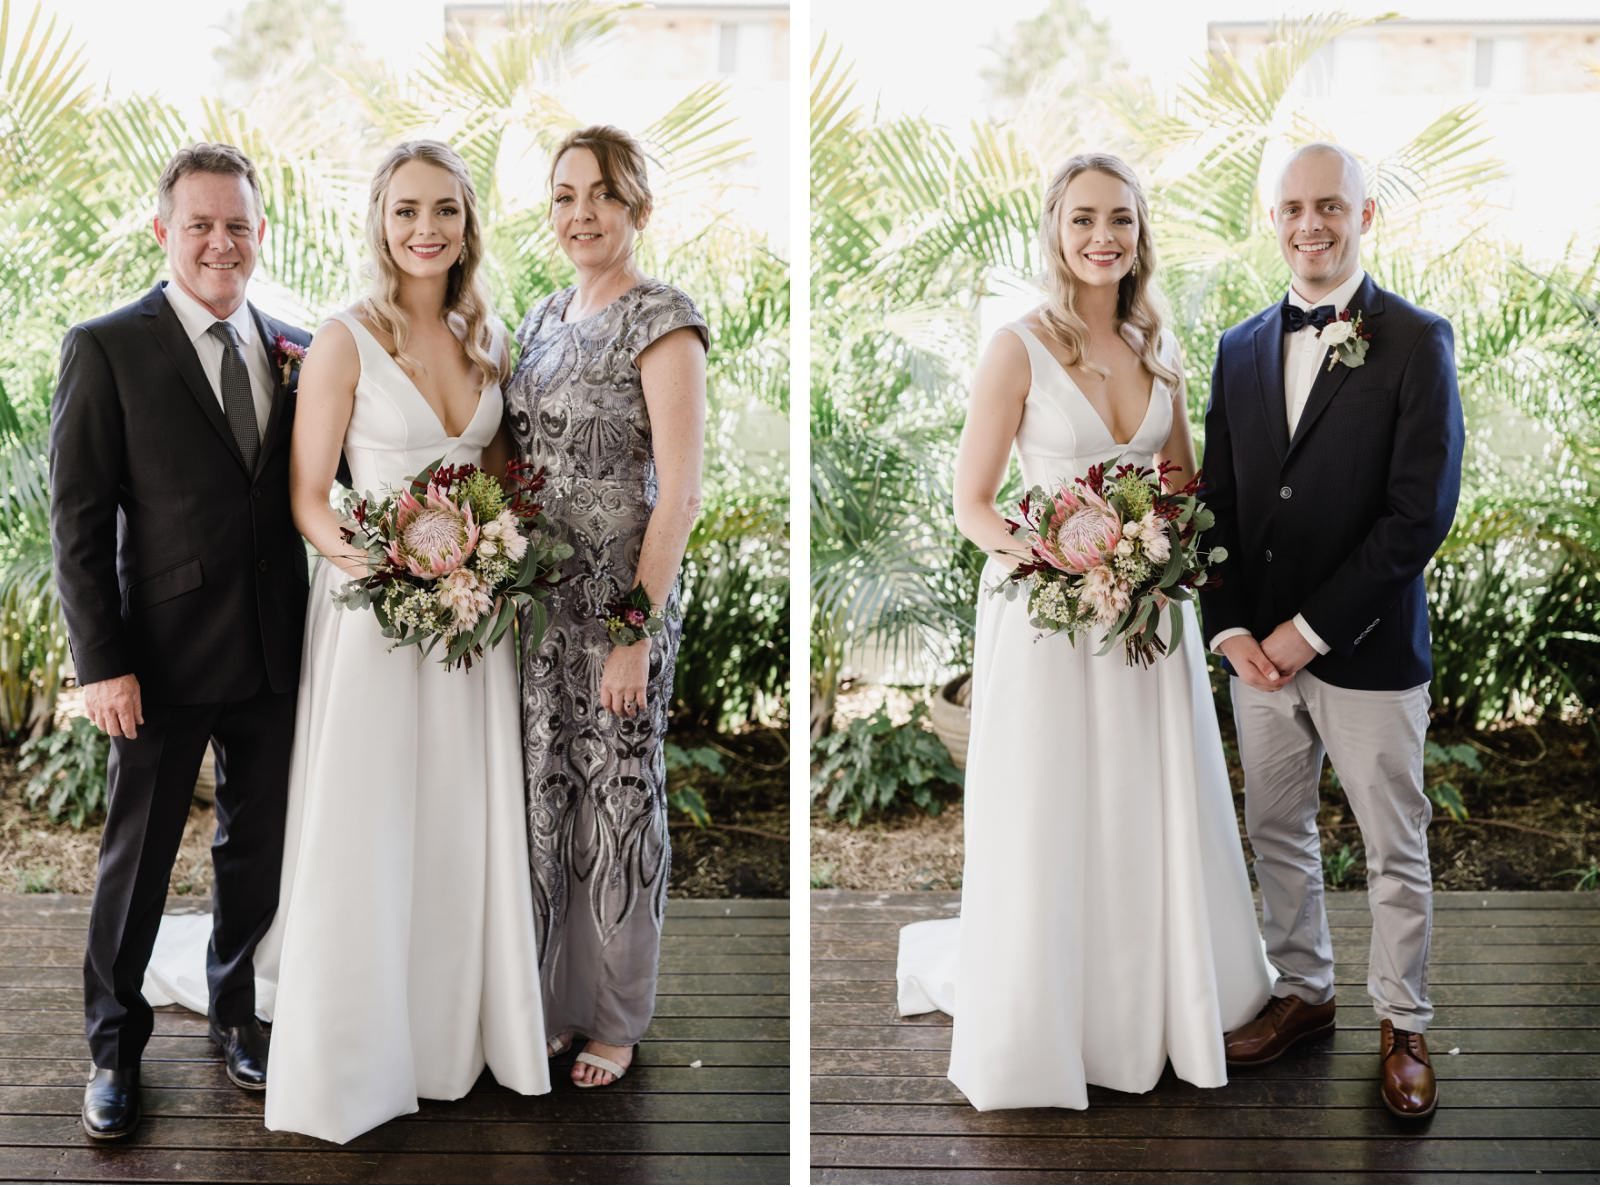 newcastle-wedding-photographer-merewether-surfhouse-kandis-samuel-29.jpg